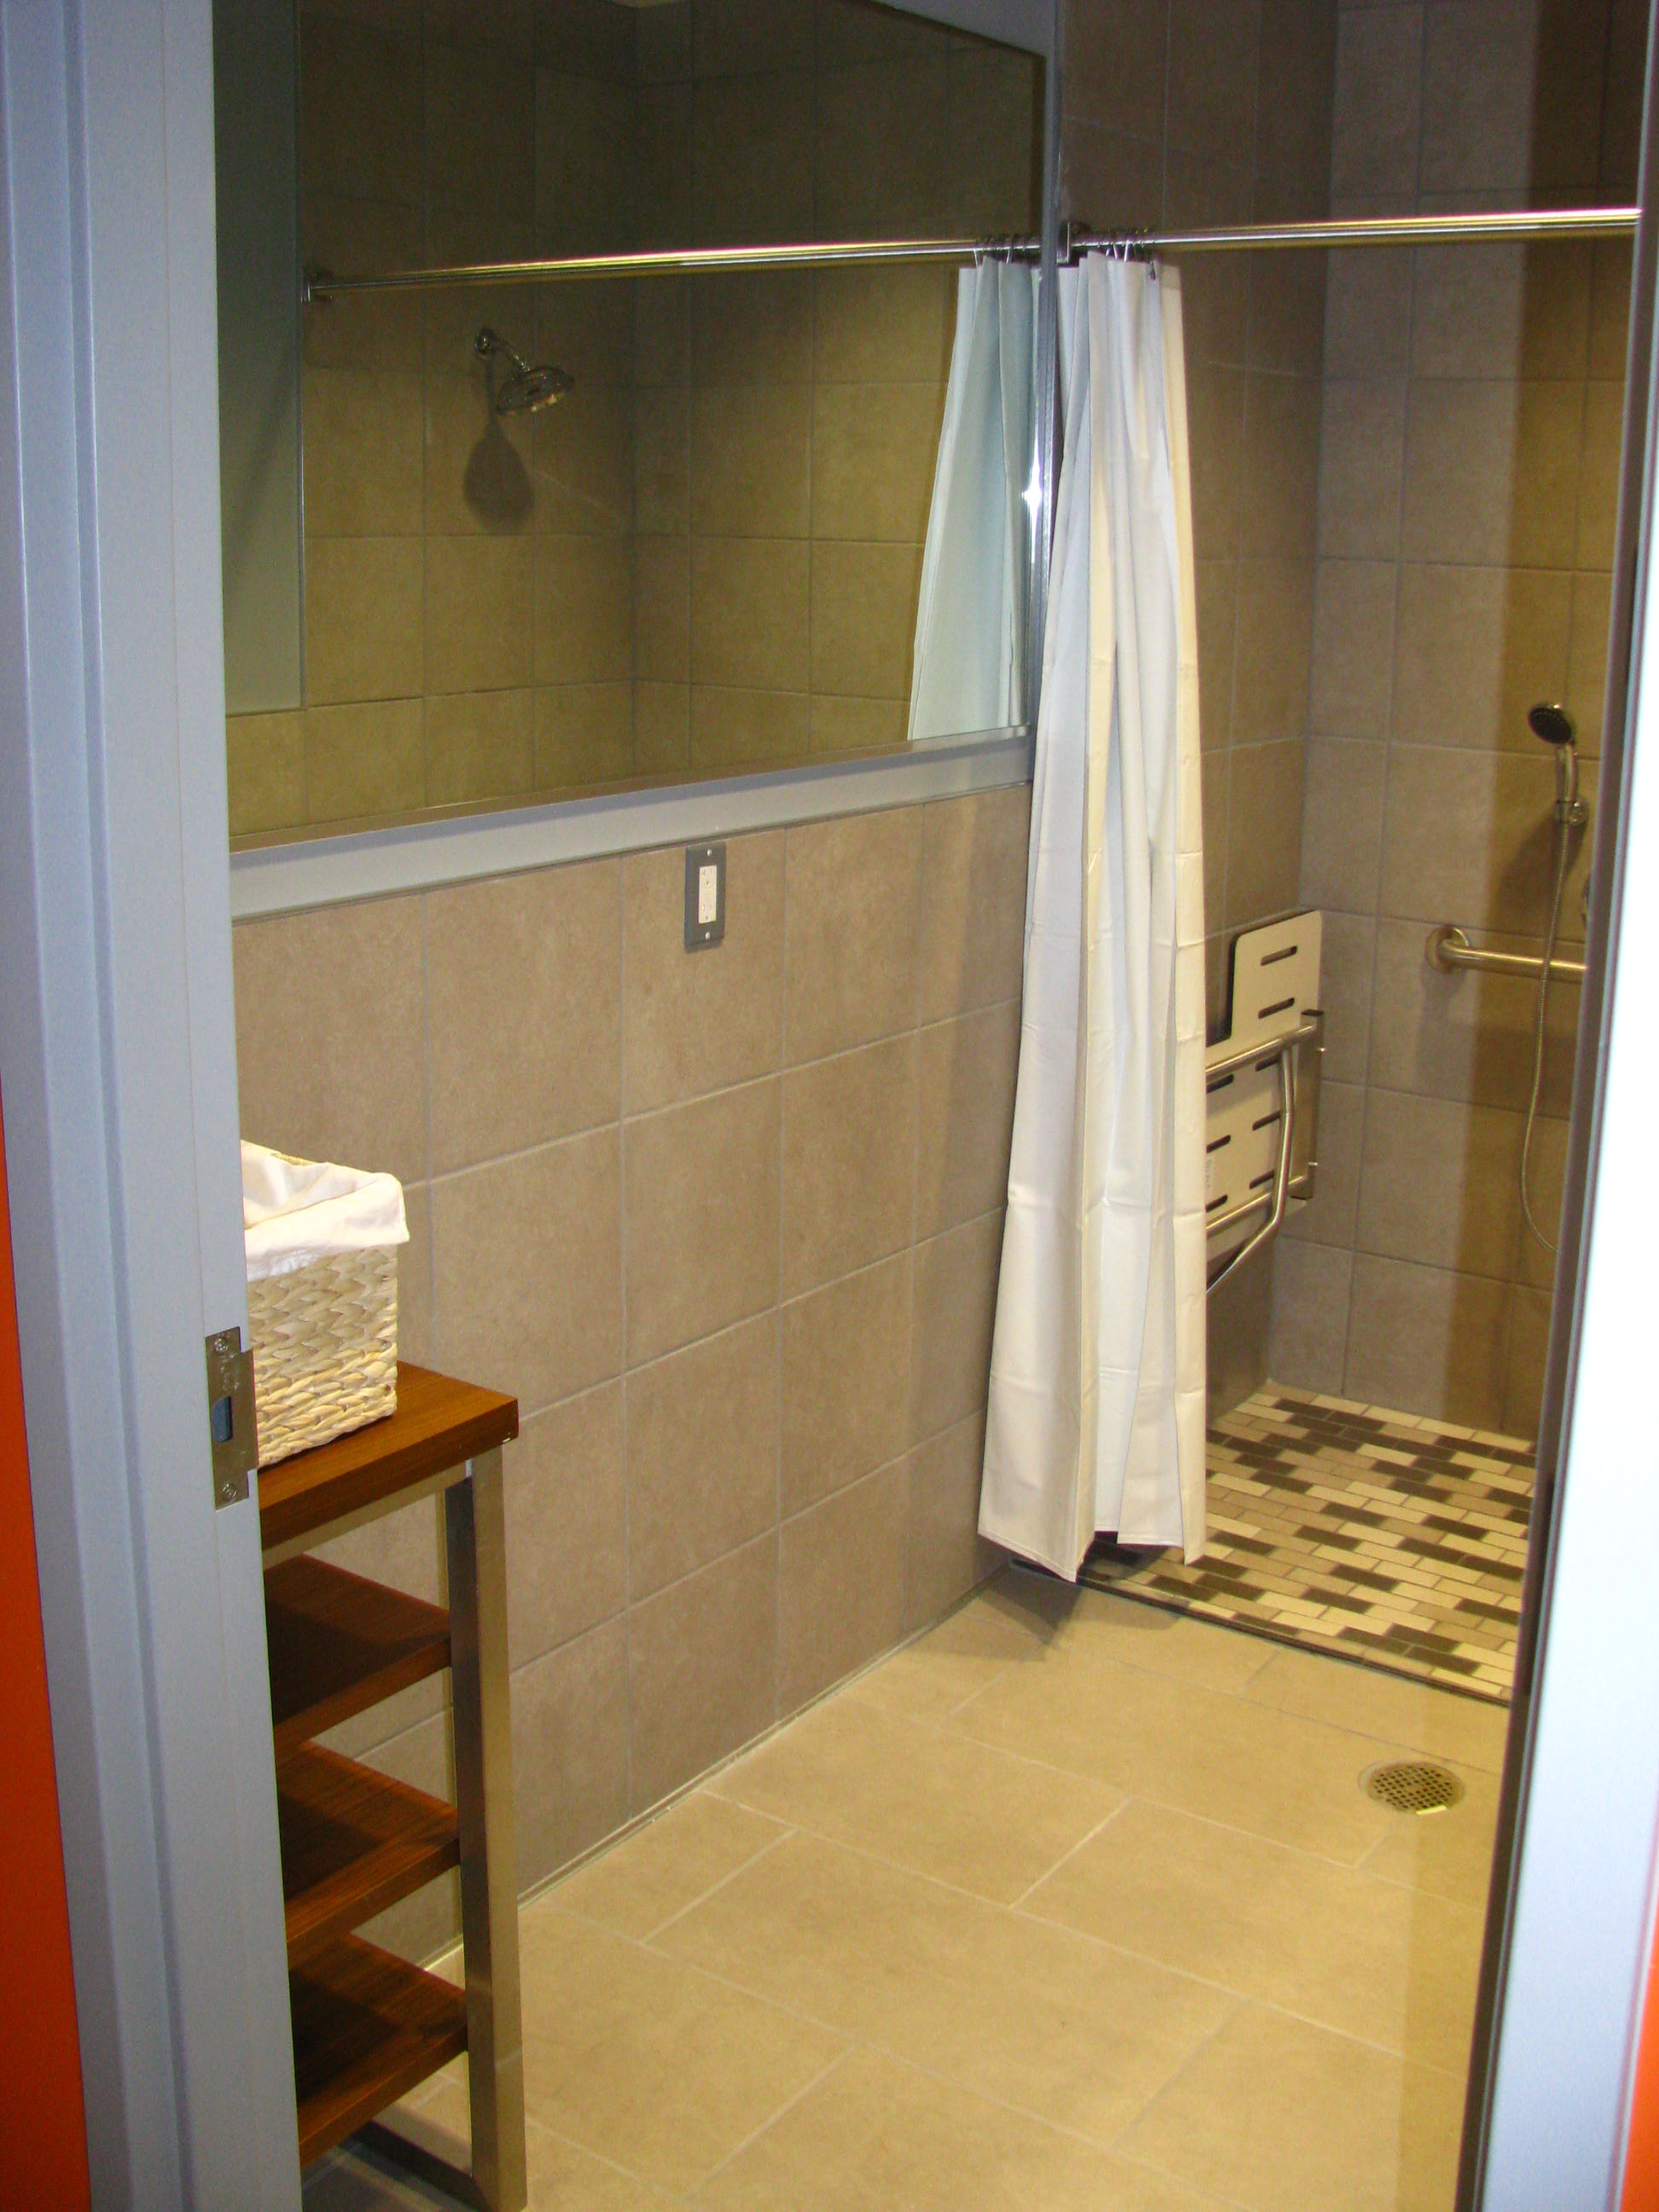 Shower Wall side view color.JPG